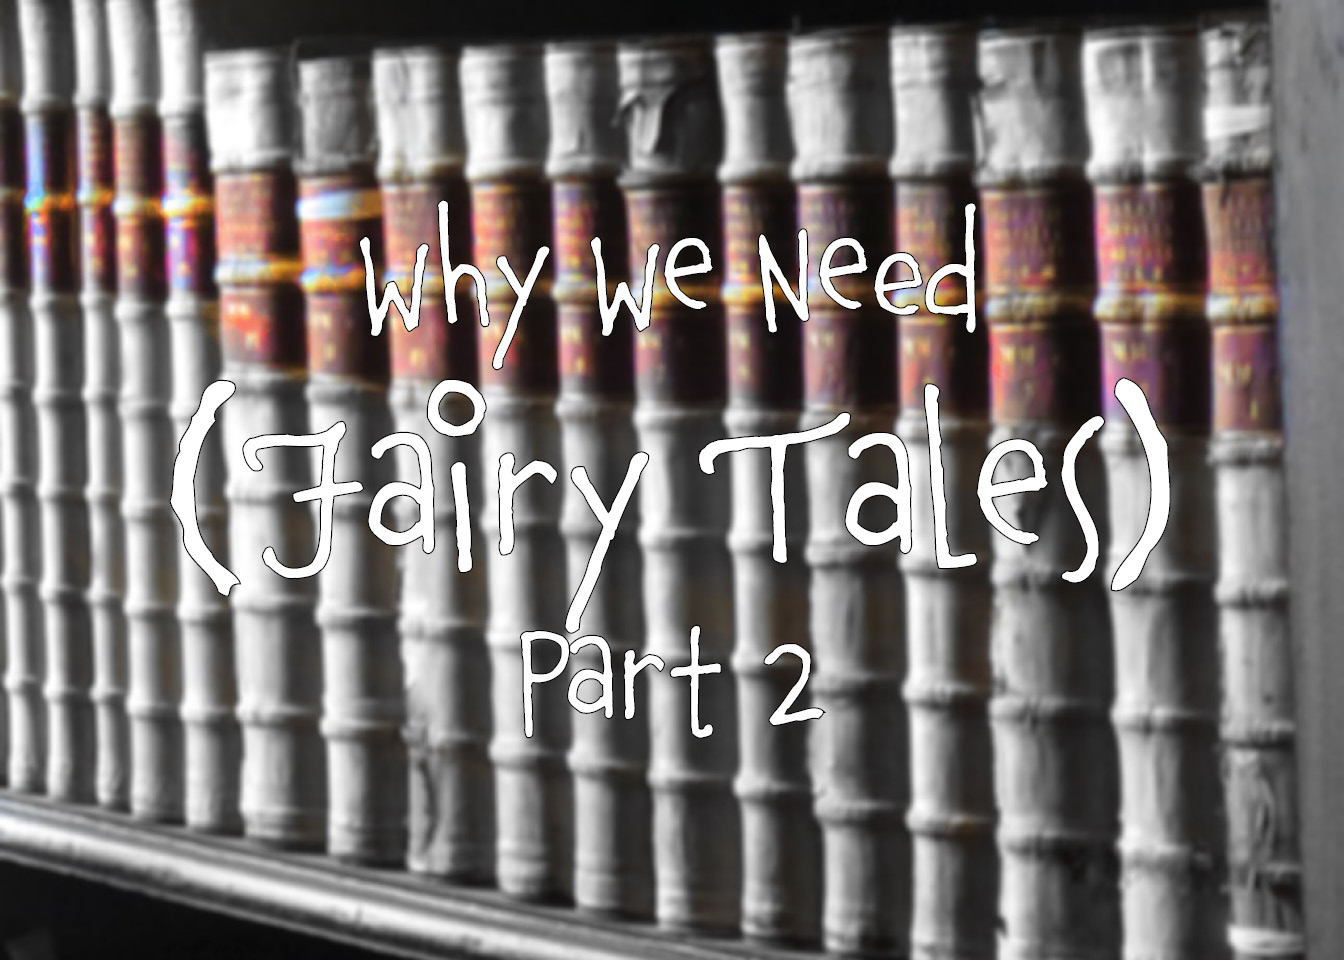 Why we Need Fairy Tales: Part 2